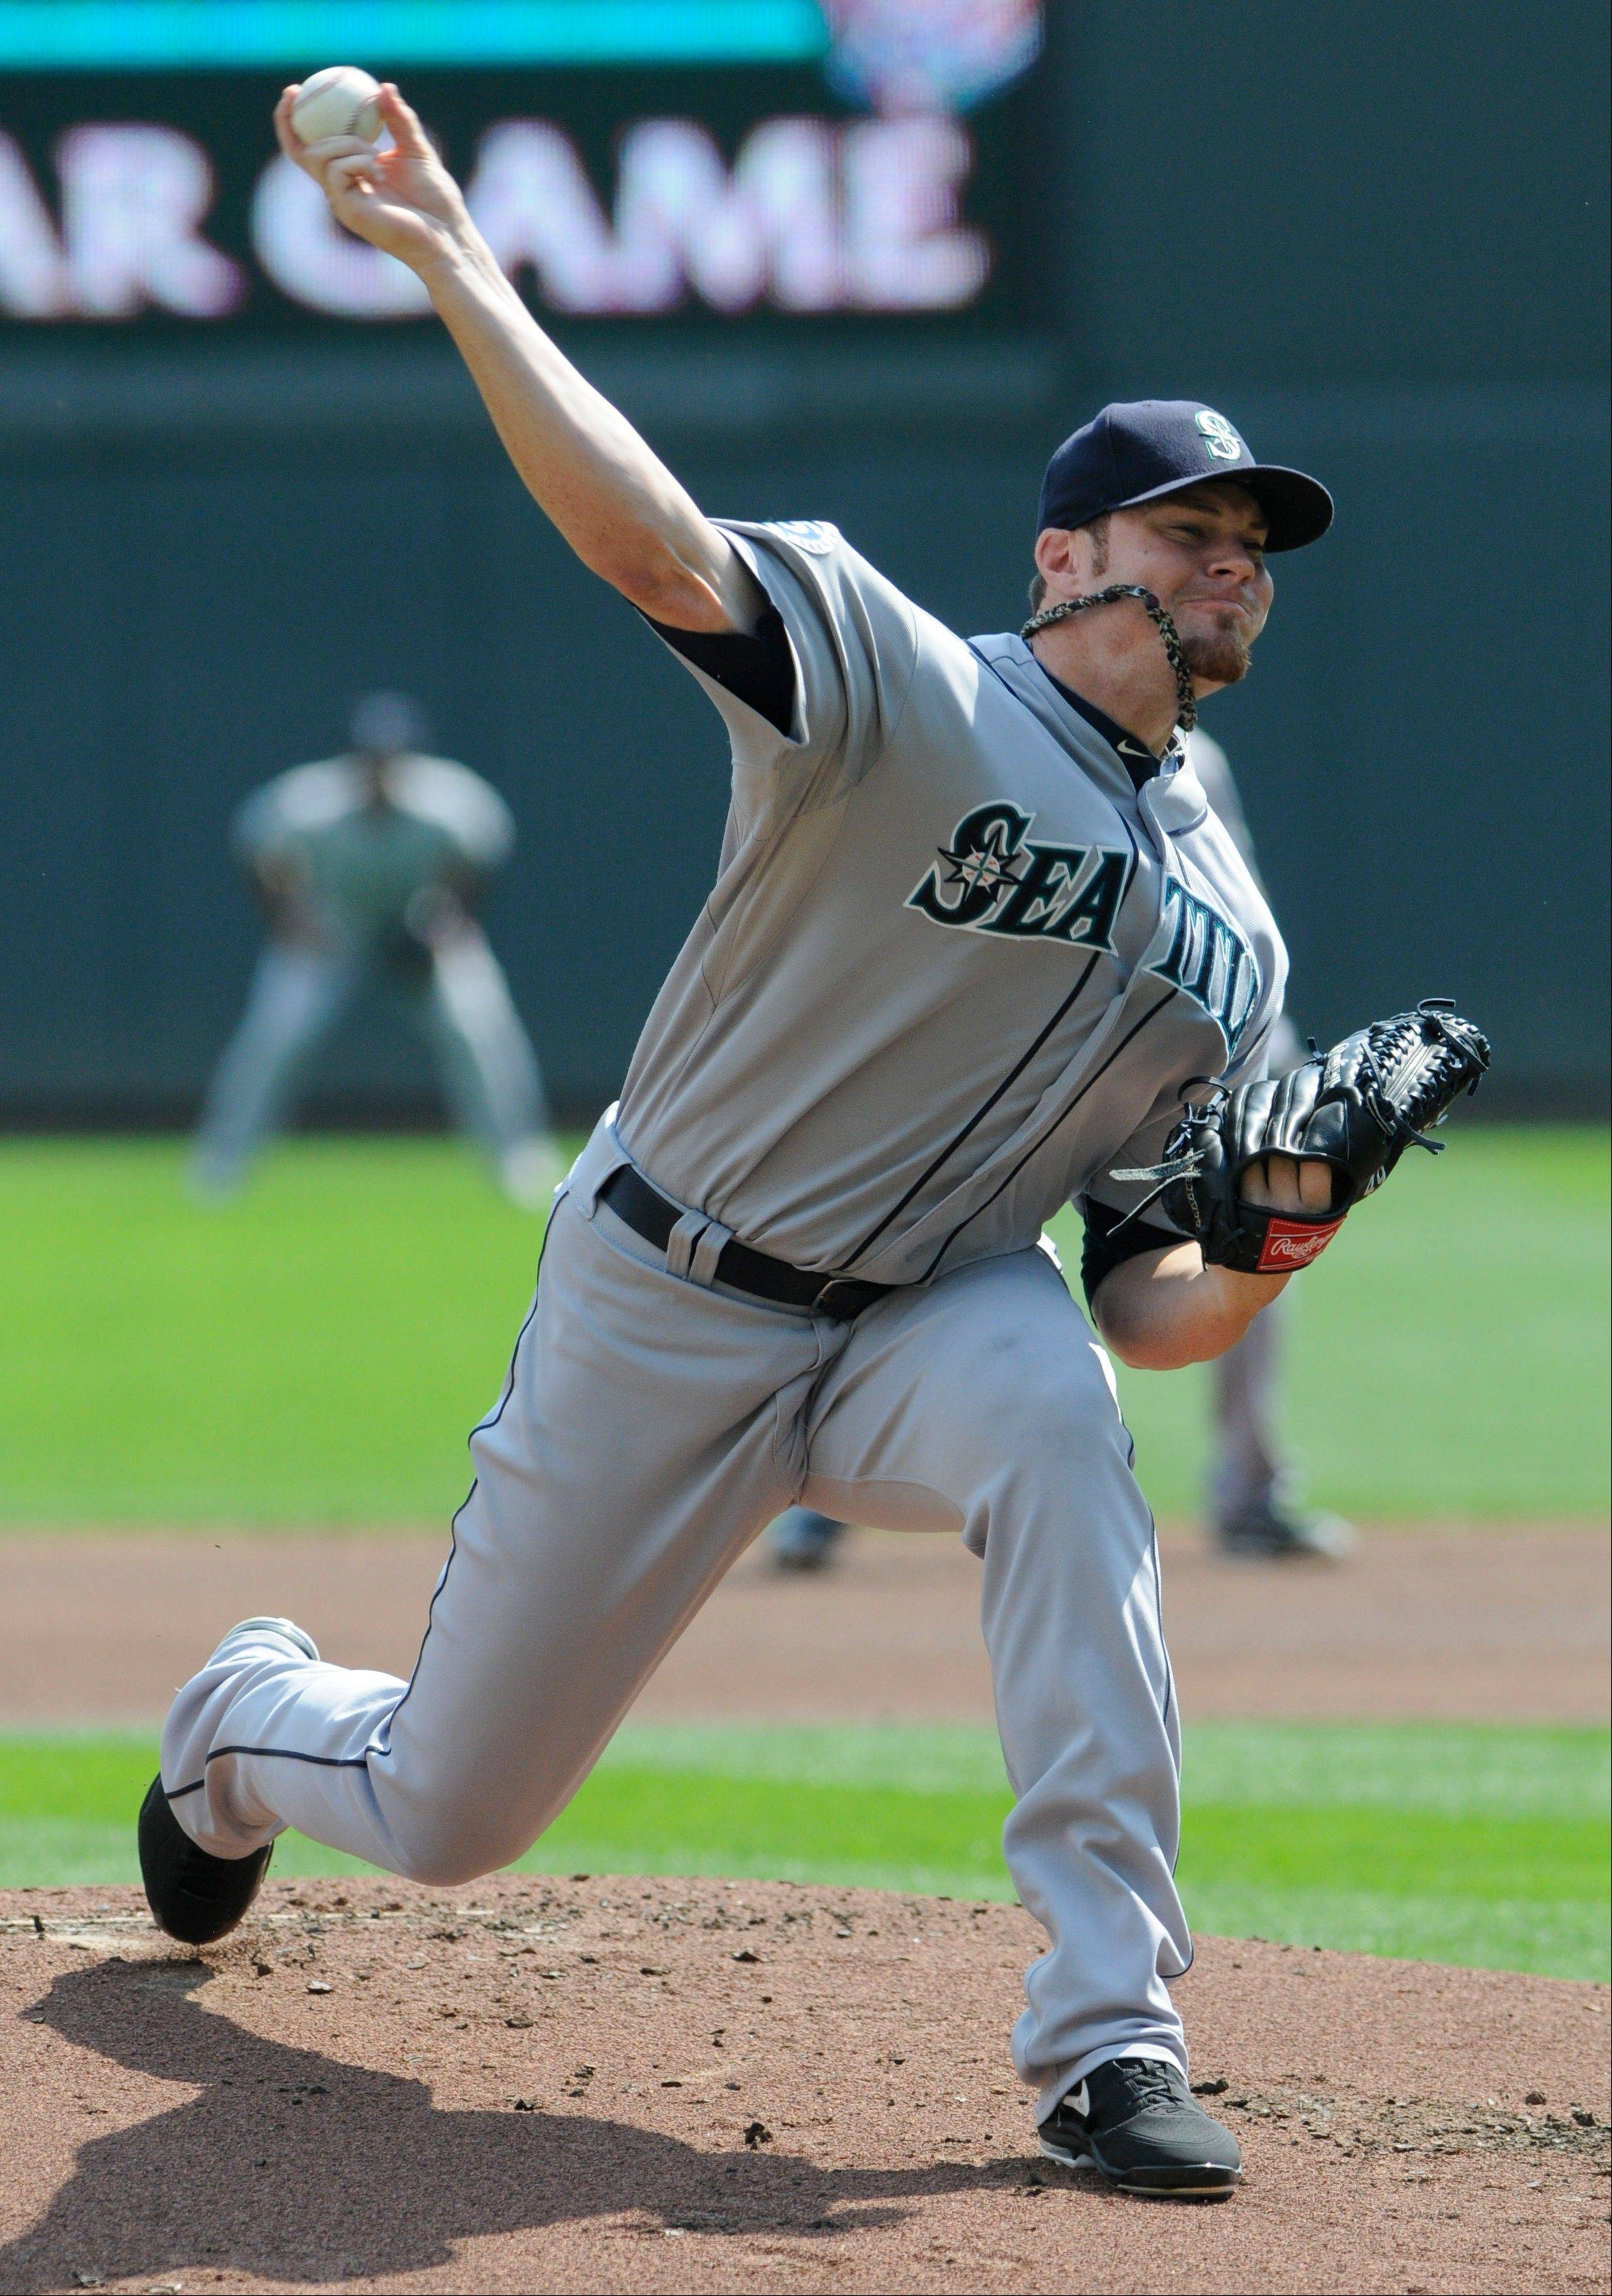 Seattle pitcher Blake Beavan scattered five hits, walked two and struck out one Thursday for a victory in Minneapolis.